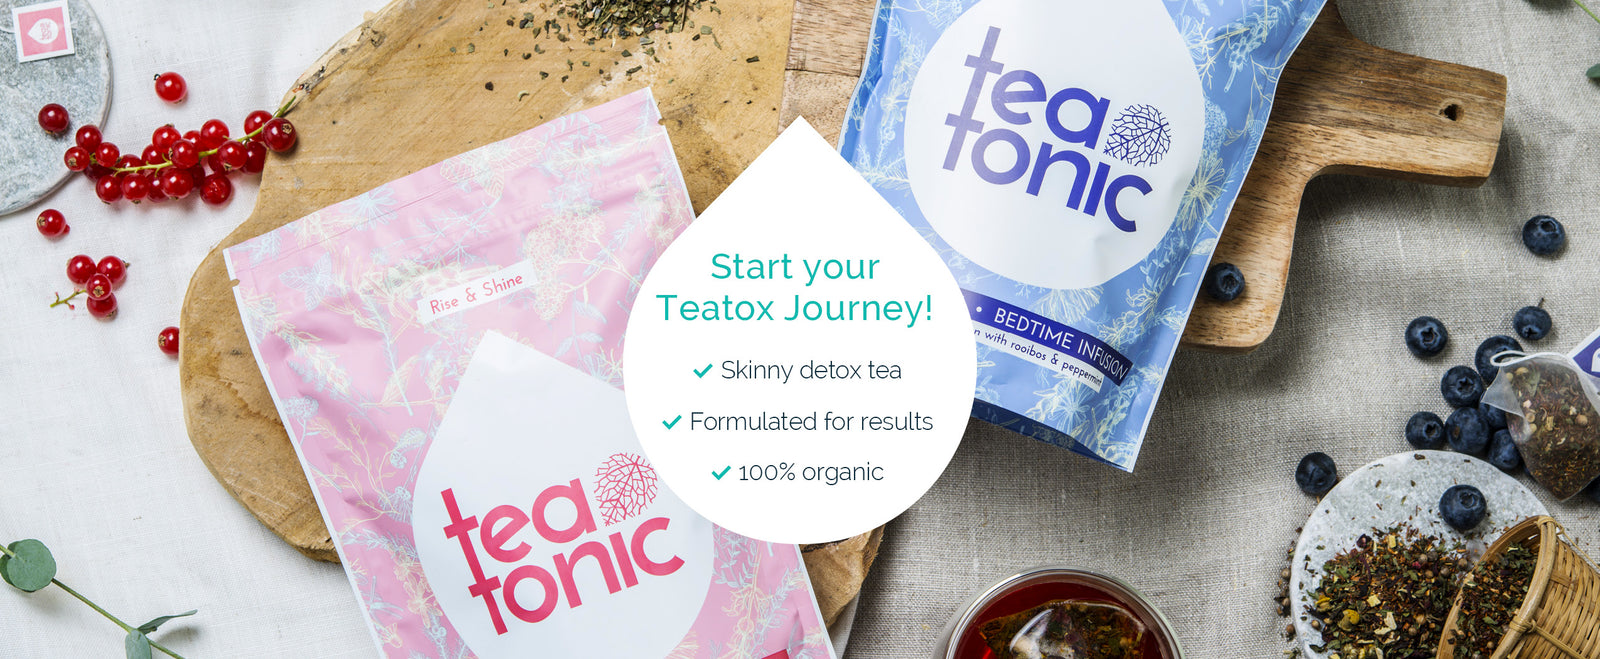 Teatonic Skinny Teatox programme - Weight loss - Detox tea